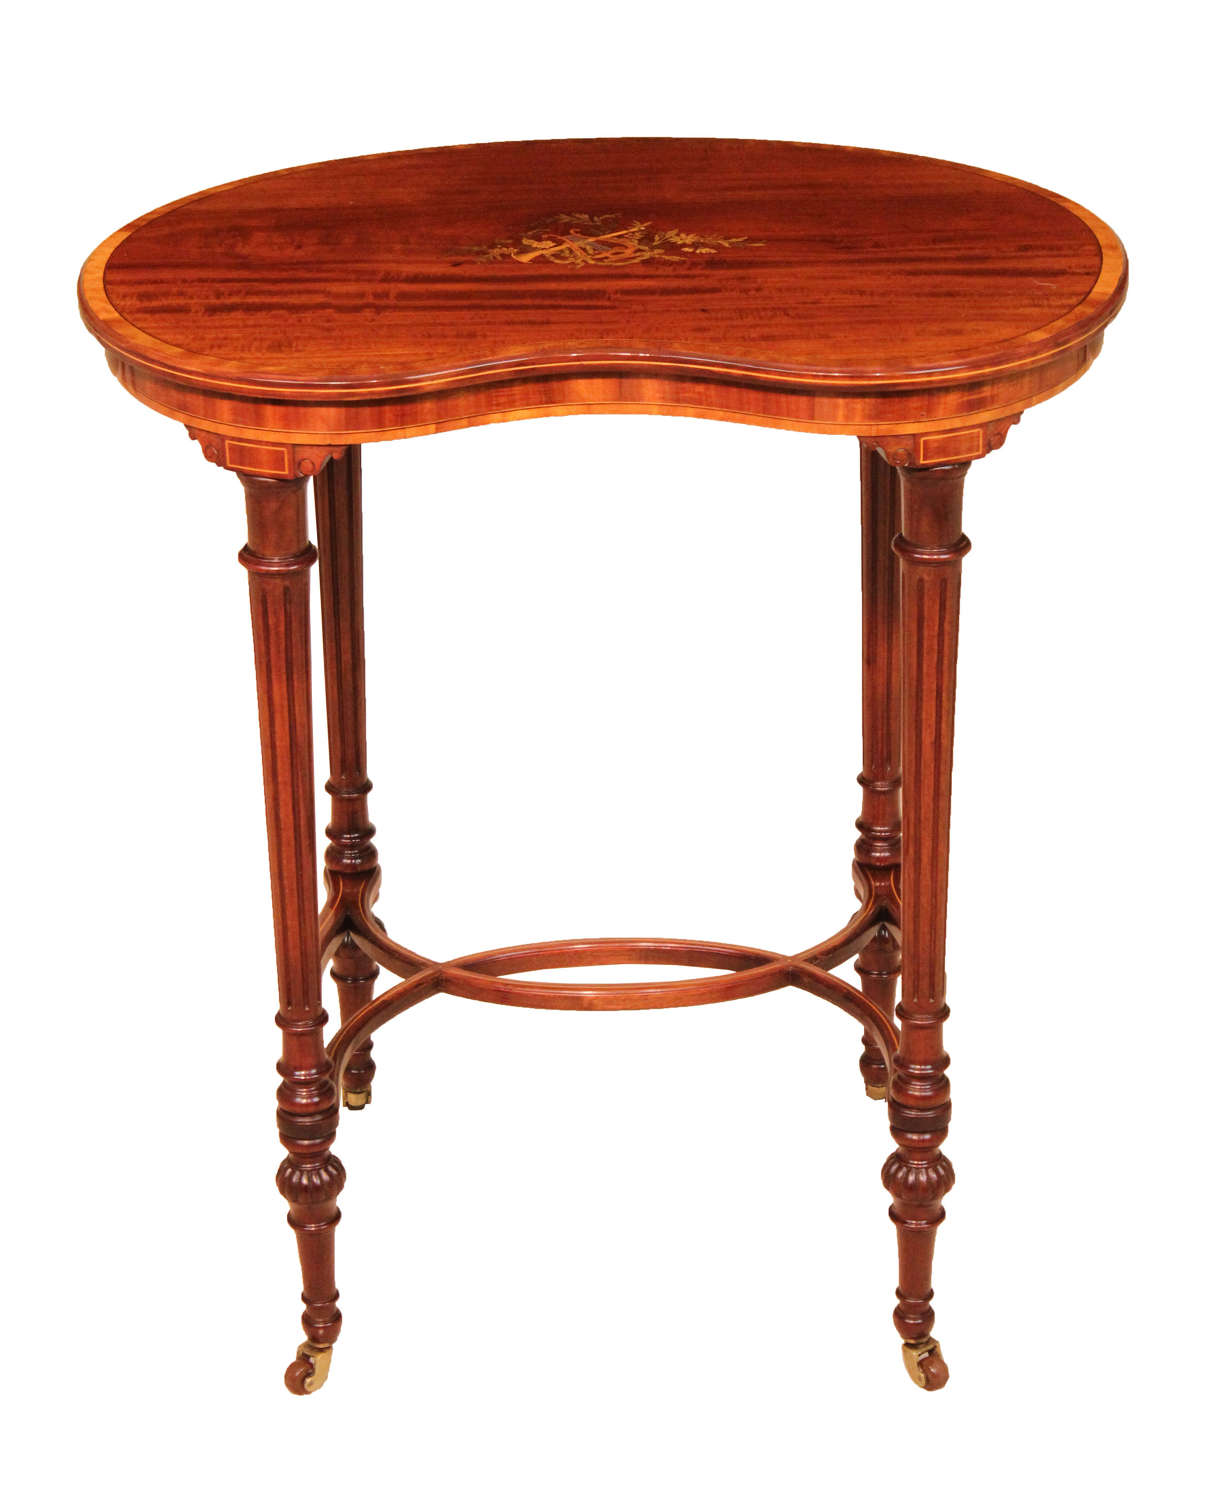 A Quality Late Victorian Mahogany Inlaid Kidney Table